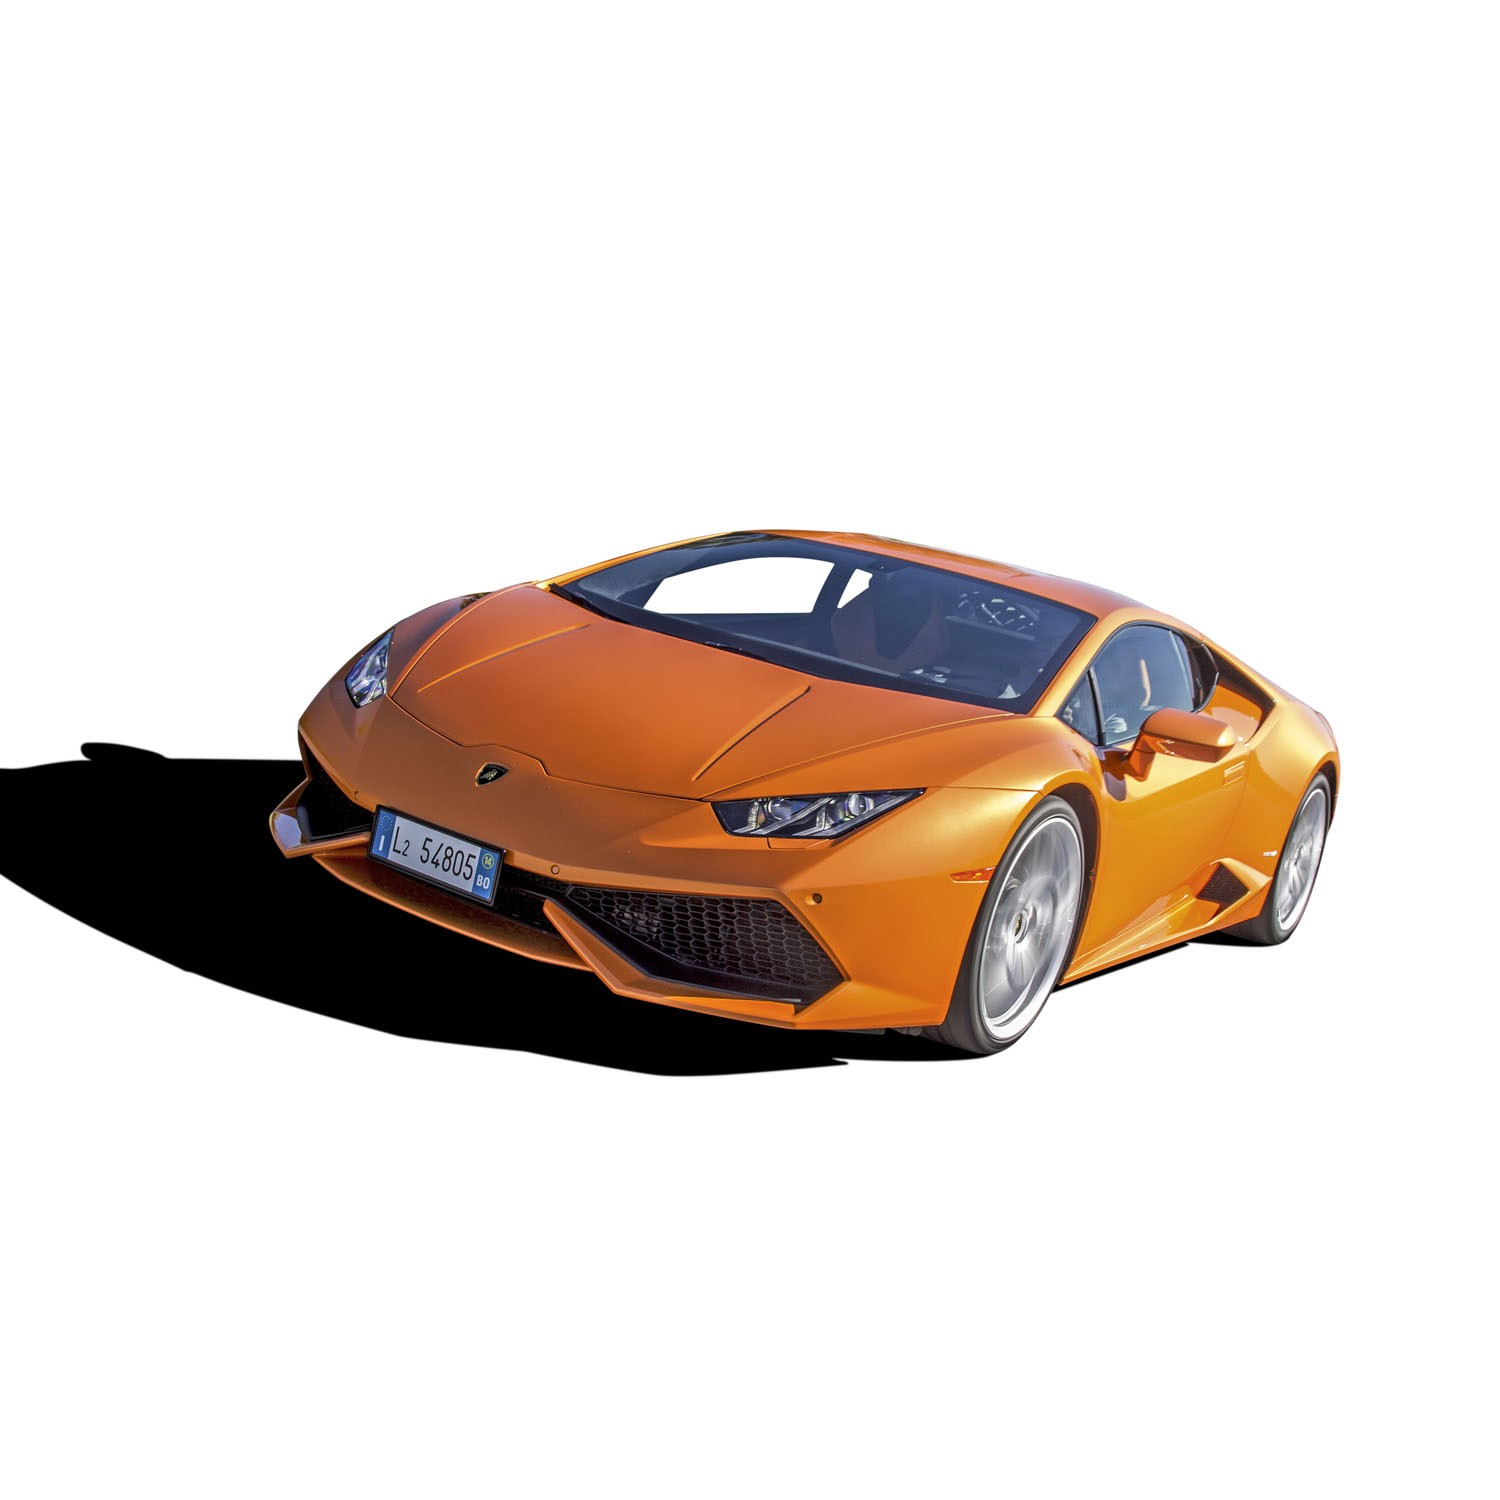 Lamborghini Huracán Model Car 1:10 Scale Full Kit